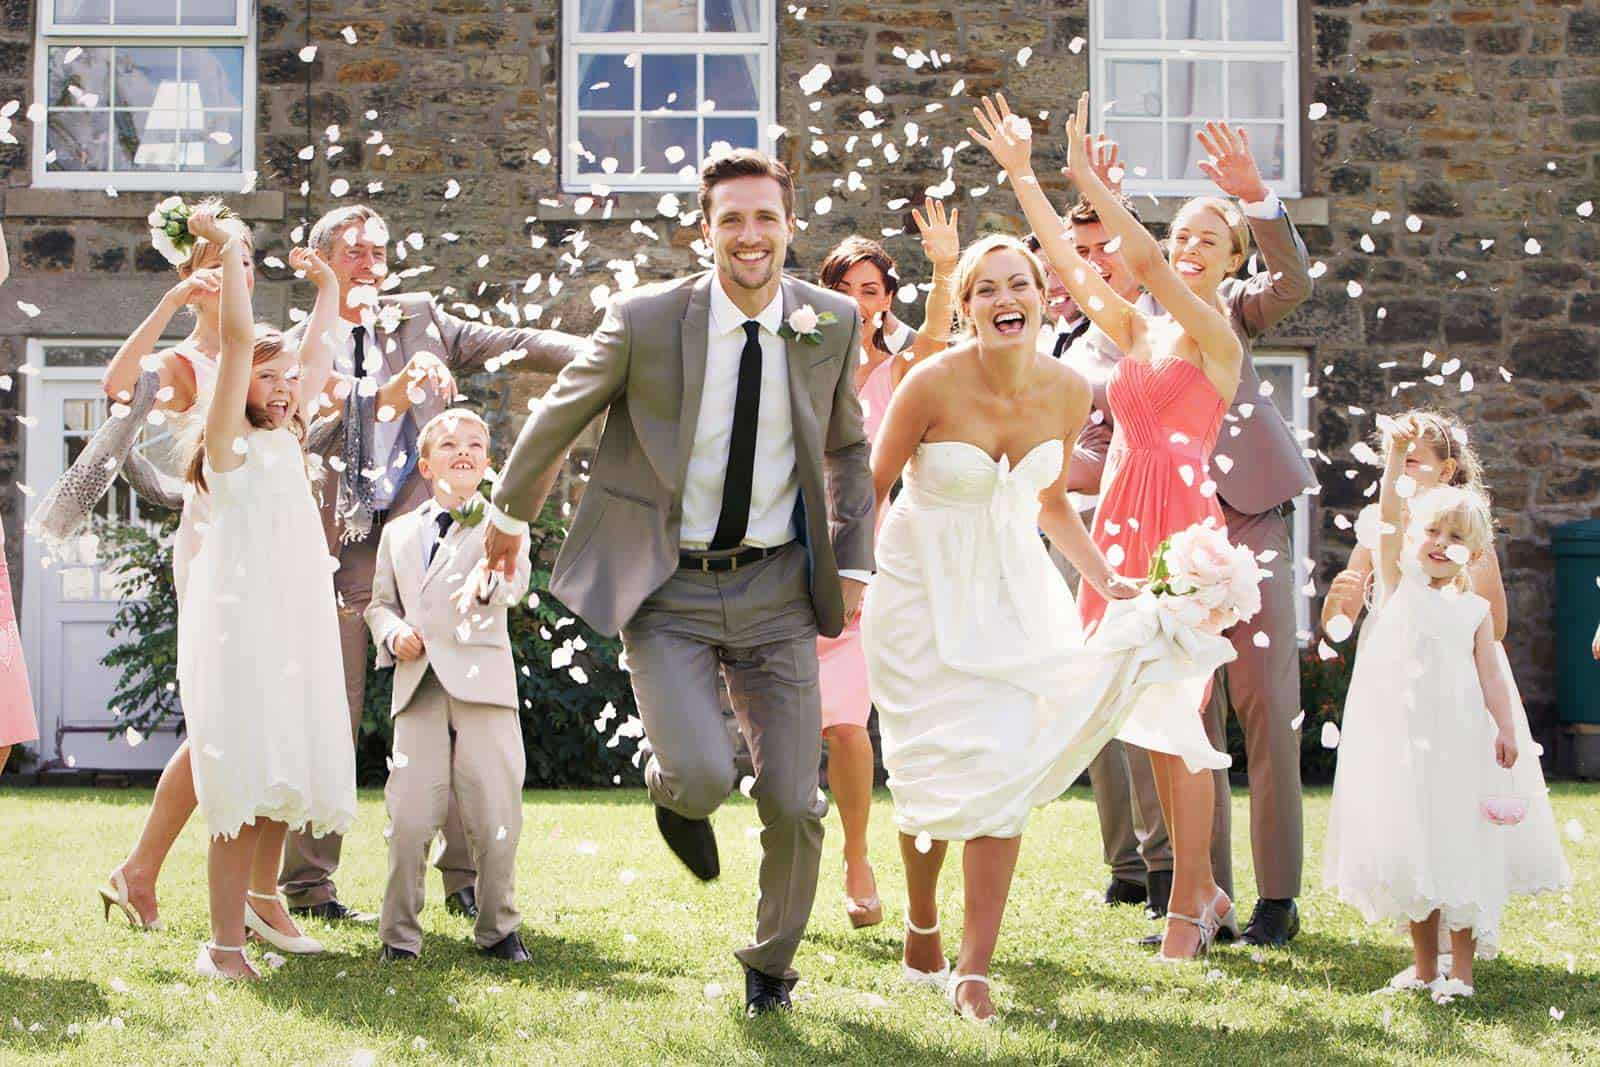 Bride and groom celebrates with their guests after receiving all of their RSVPs on time